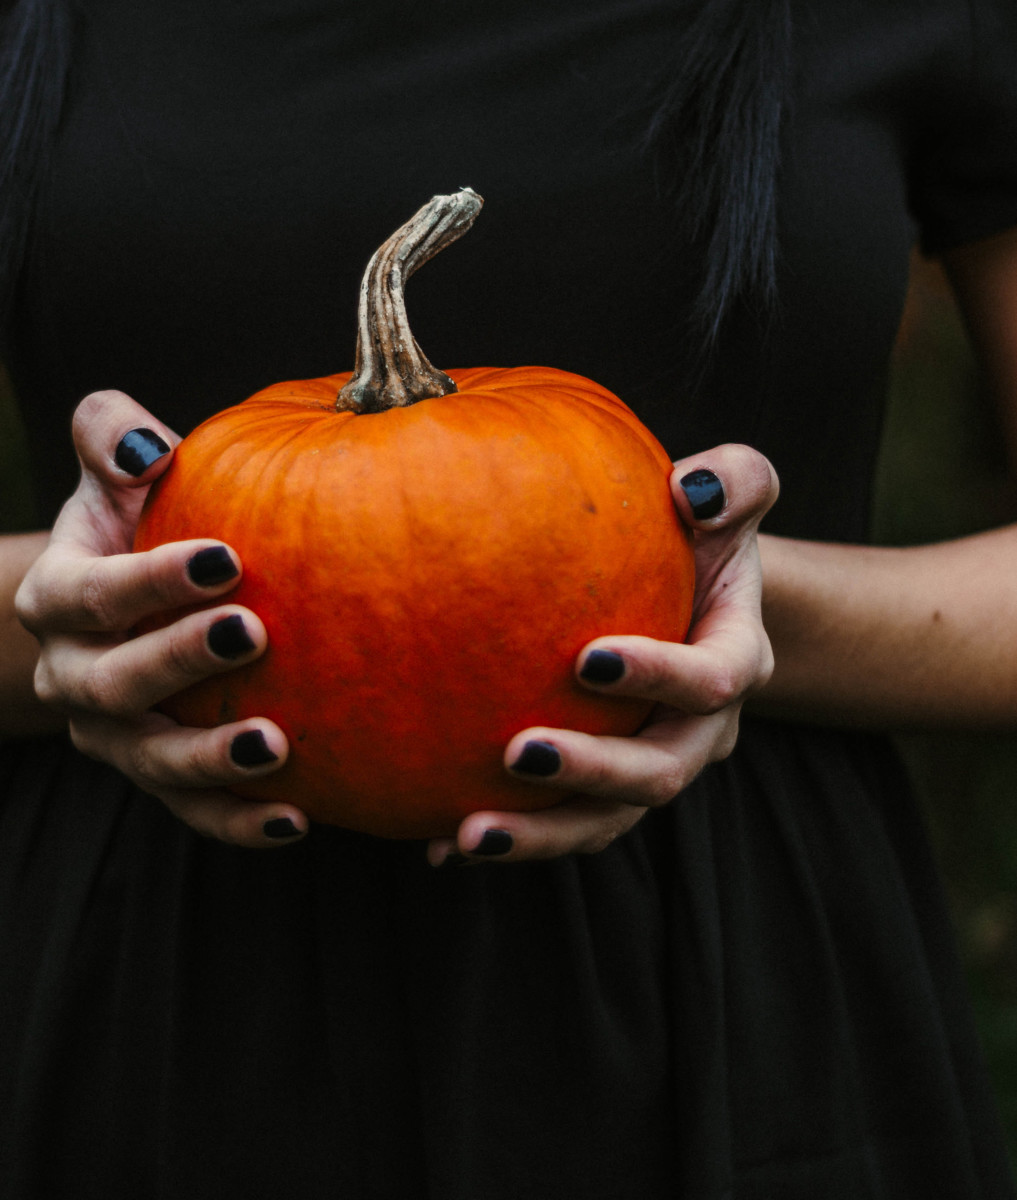 Ask friends to bring a pumpkin, and they can have fun carving it. Photo by Kristina Paukshtite from Pexels